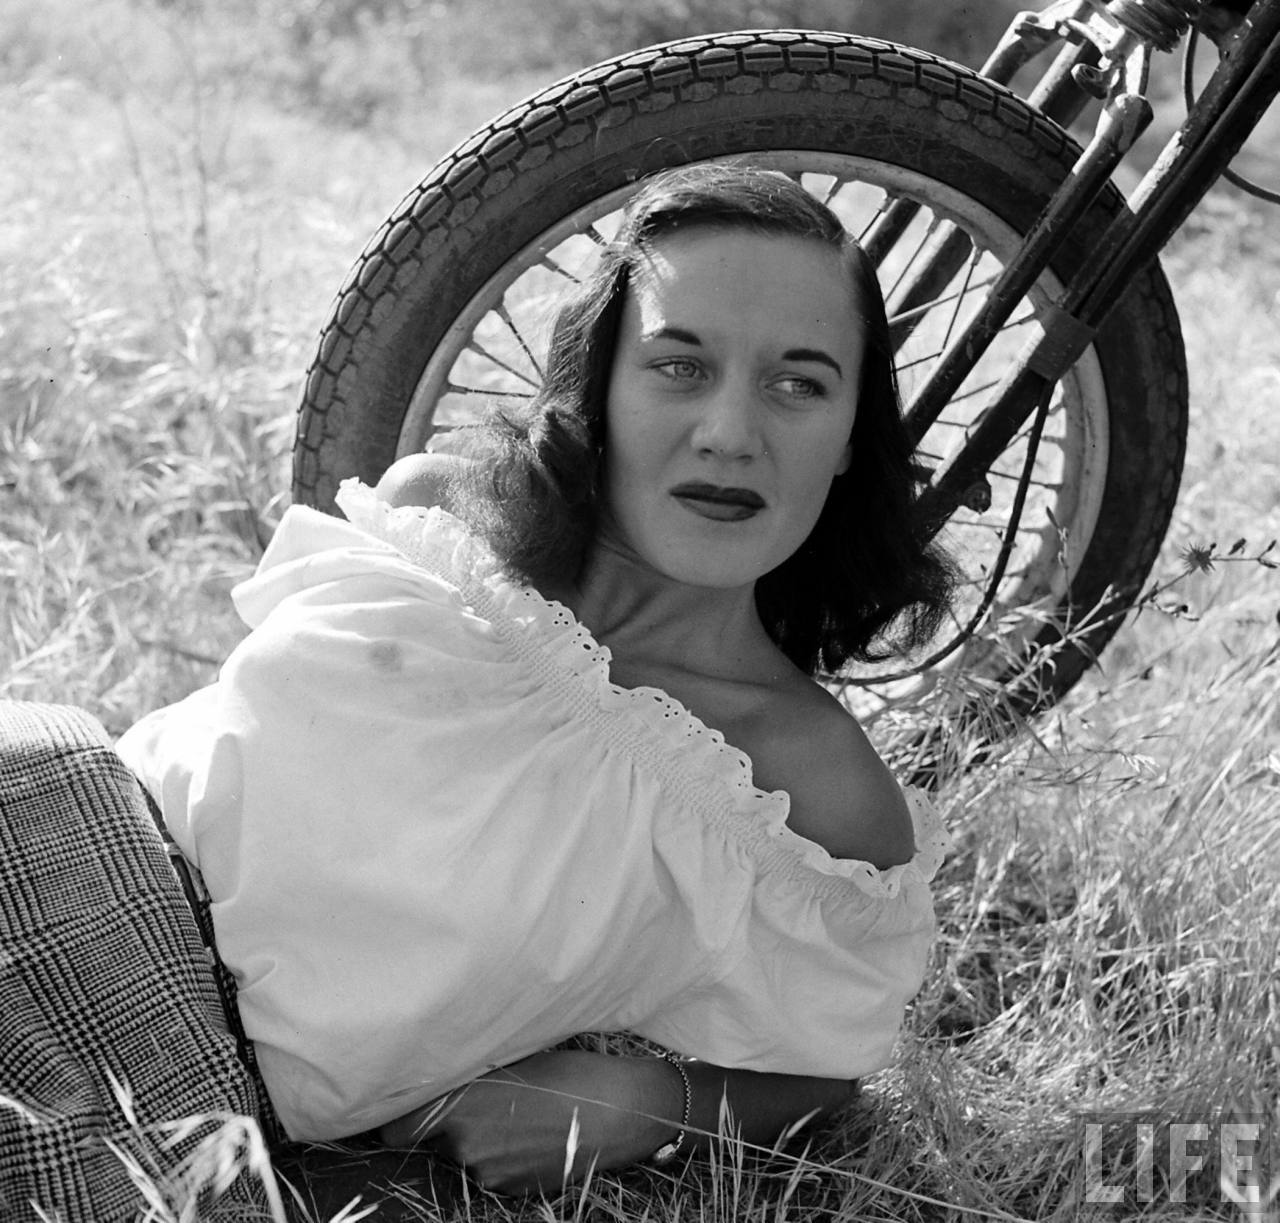 Bike Girls by Loomis Dean, LIFE Magazine '1949